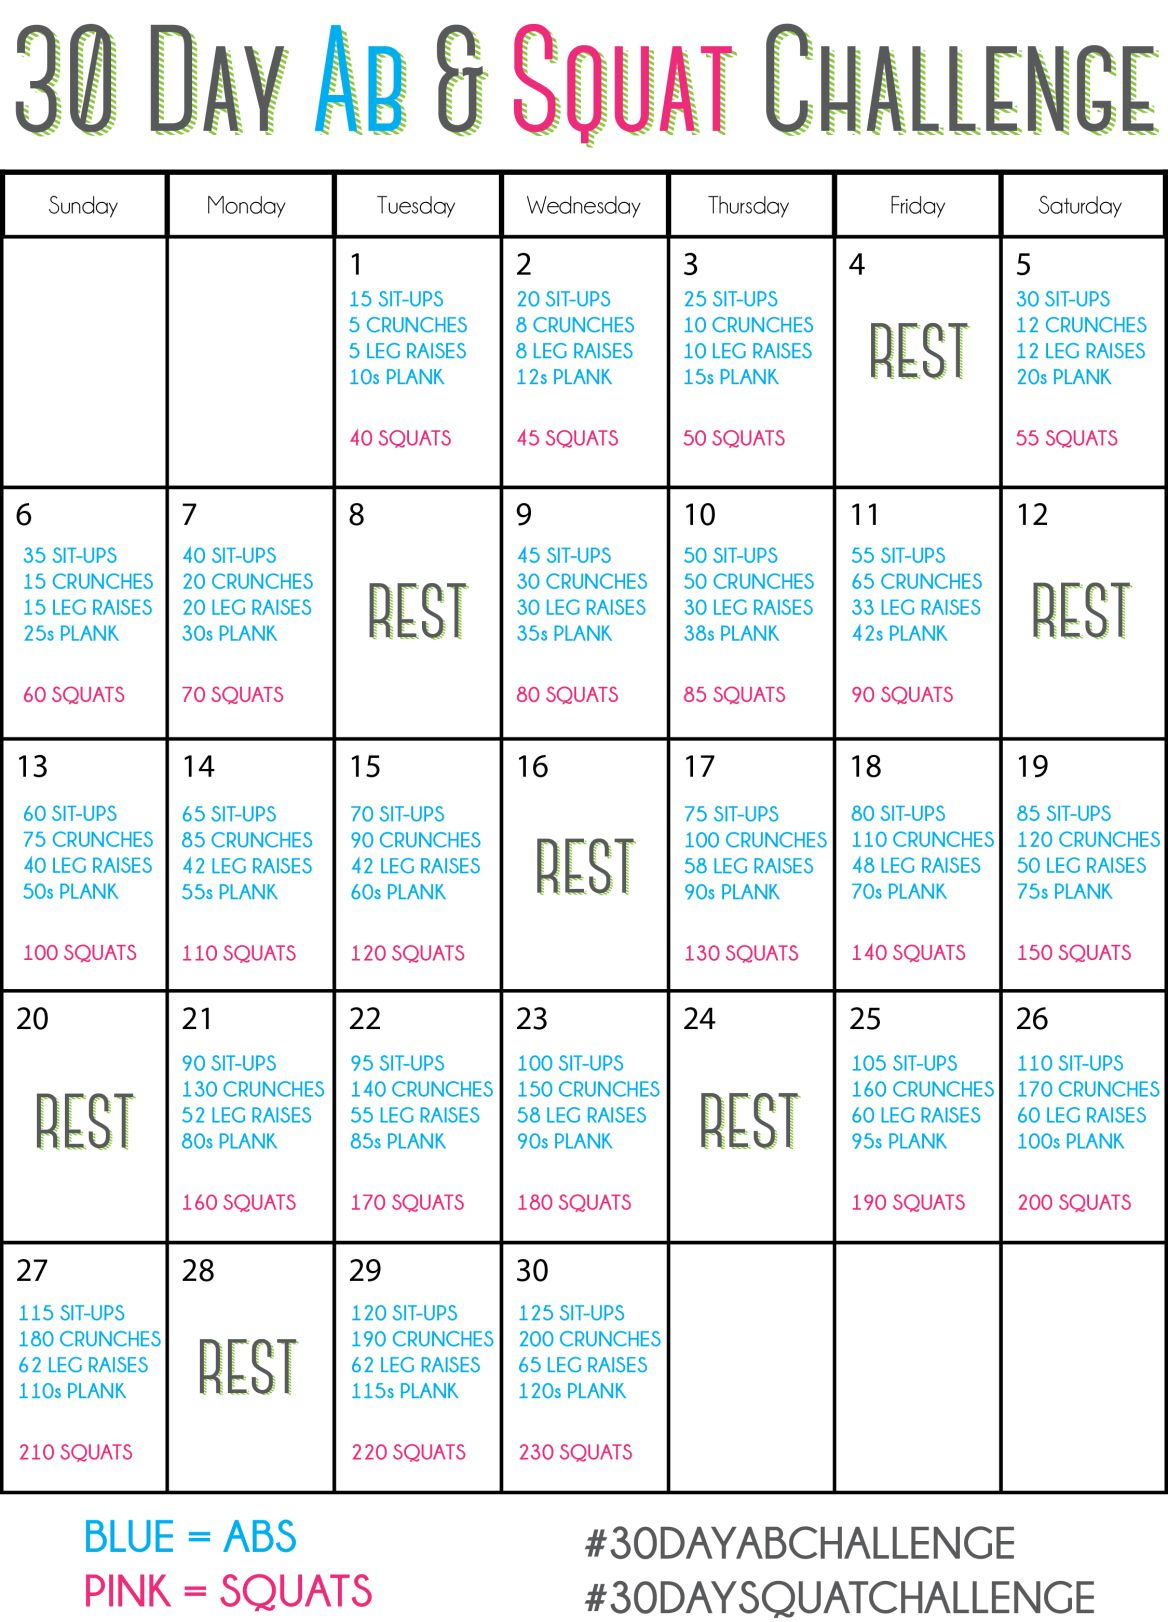 30 Day Sit Up And Squat Challenge Printable | Printable intended for 30 Day Squat Challenge Calendar